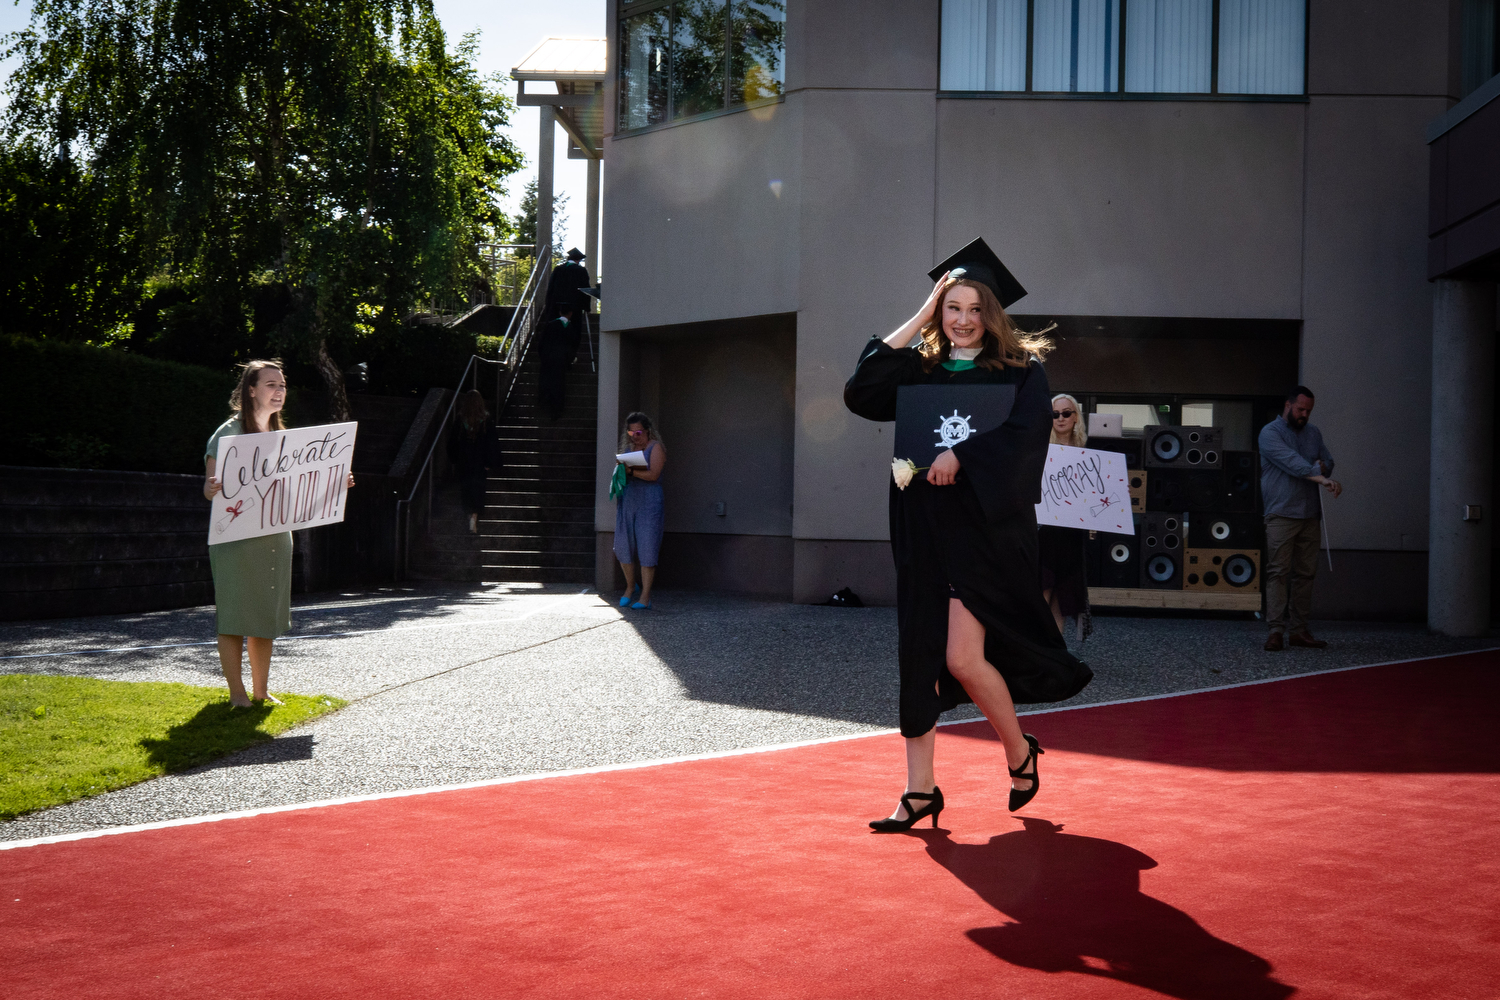 An Earl Marriott Secondary School graduate walks down a red carpet at a physically distanced graduation ceremony in Surrey on May 27, 2020. (Maggie MacPherson/CBC)